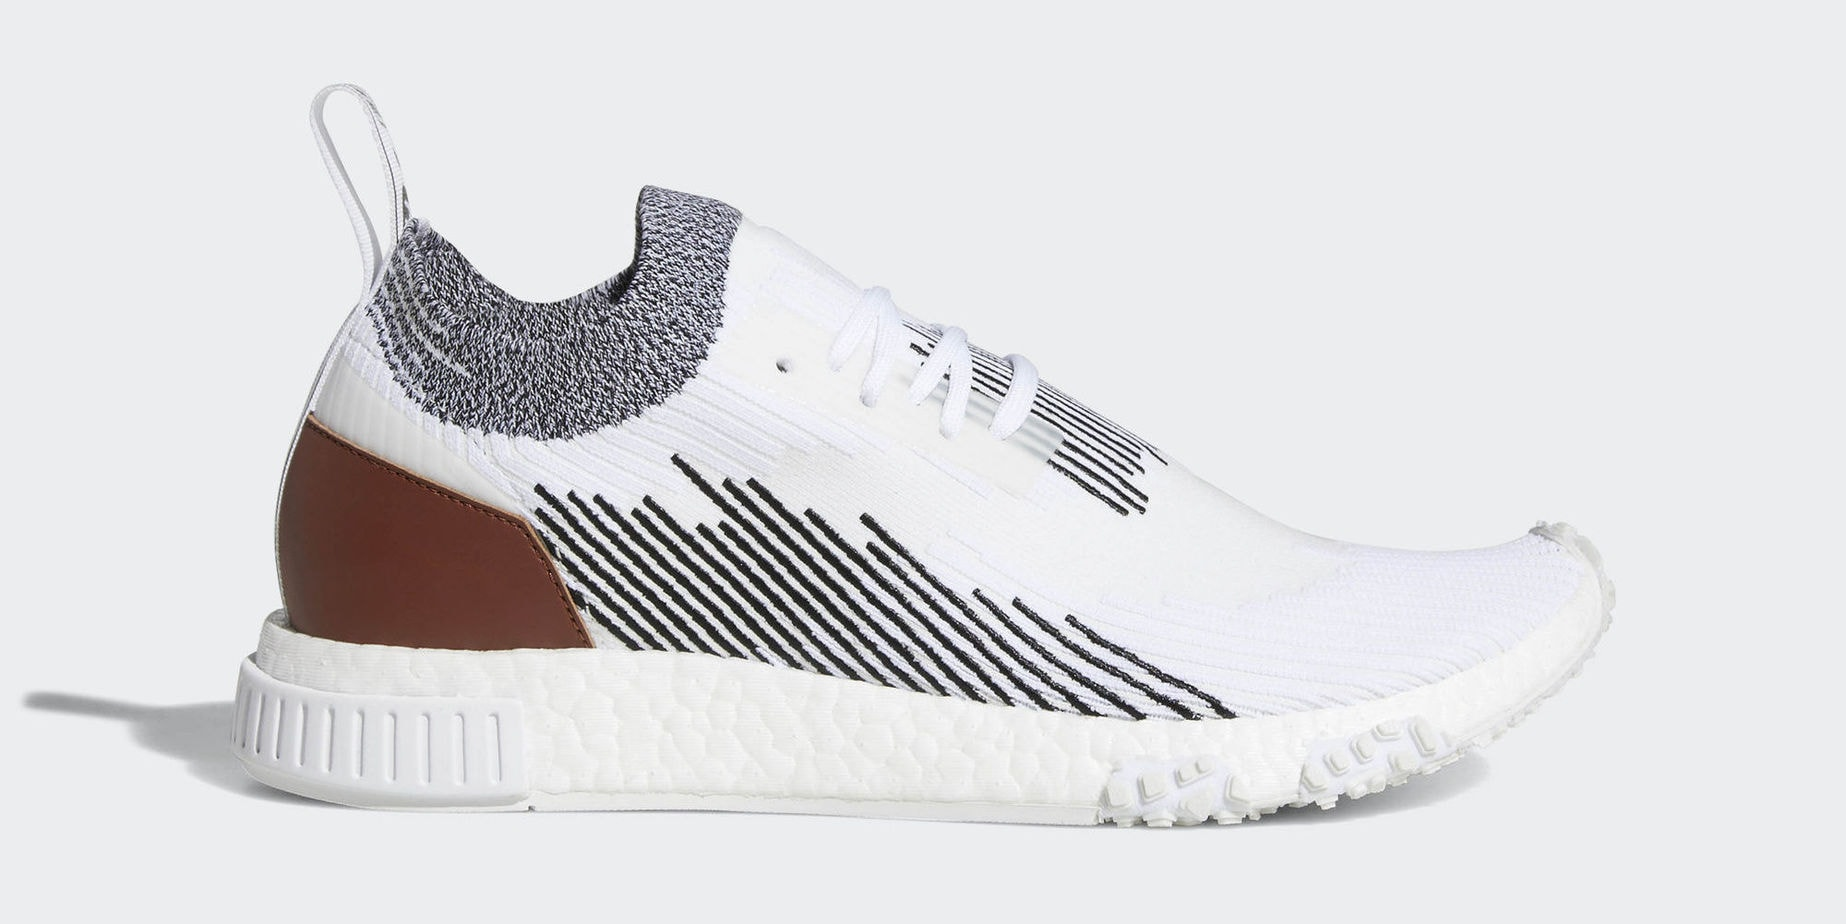 adidas started 2018 with a brand new NMD silhouette. Titled the Racer 86d6bfa9b